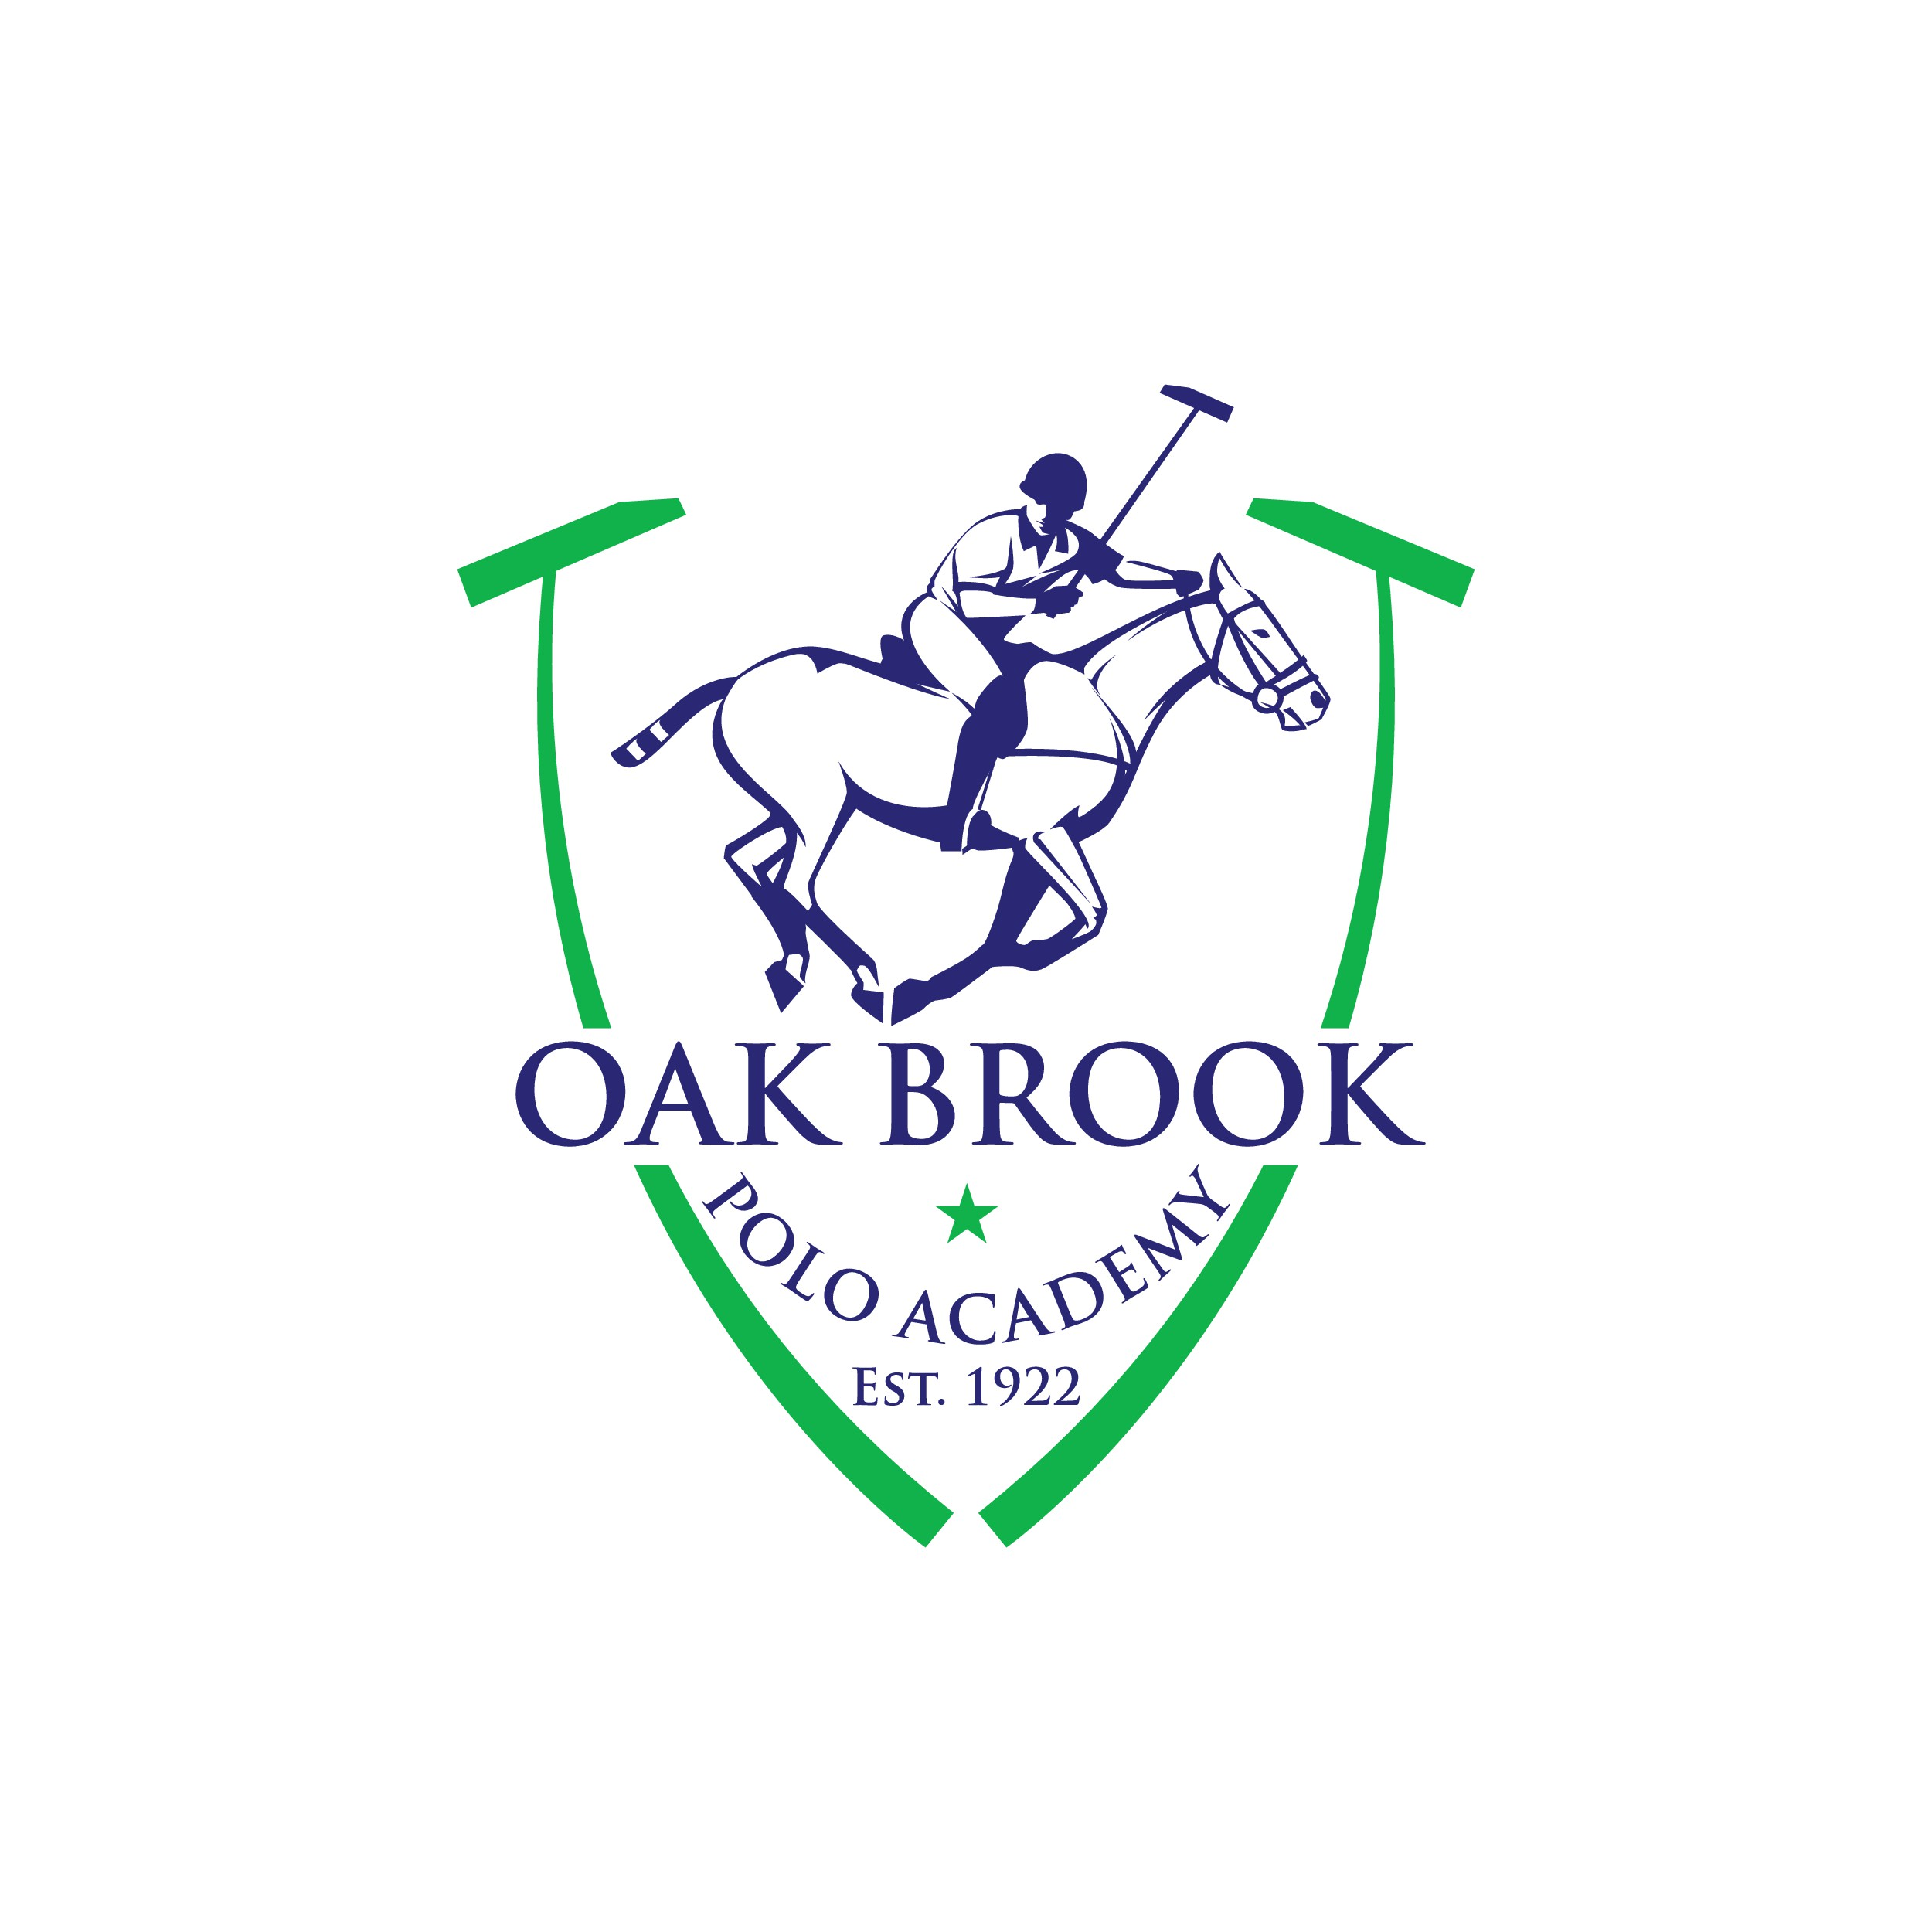 Design a sophisticated Polo Academy logo for one of the nation's oldest Polo Clubs!